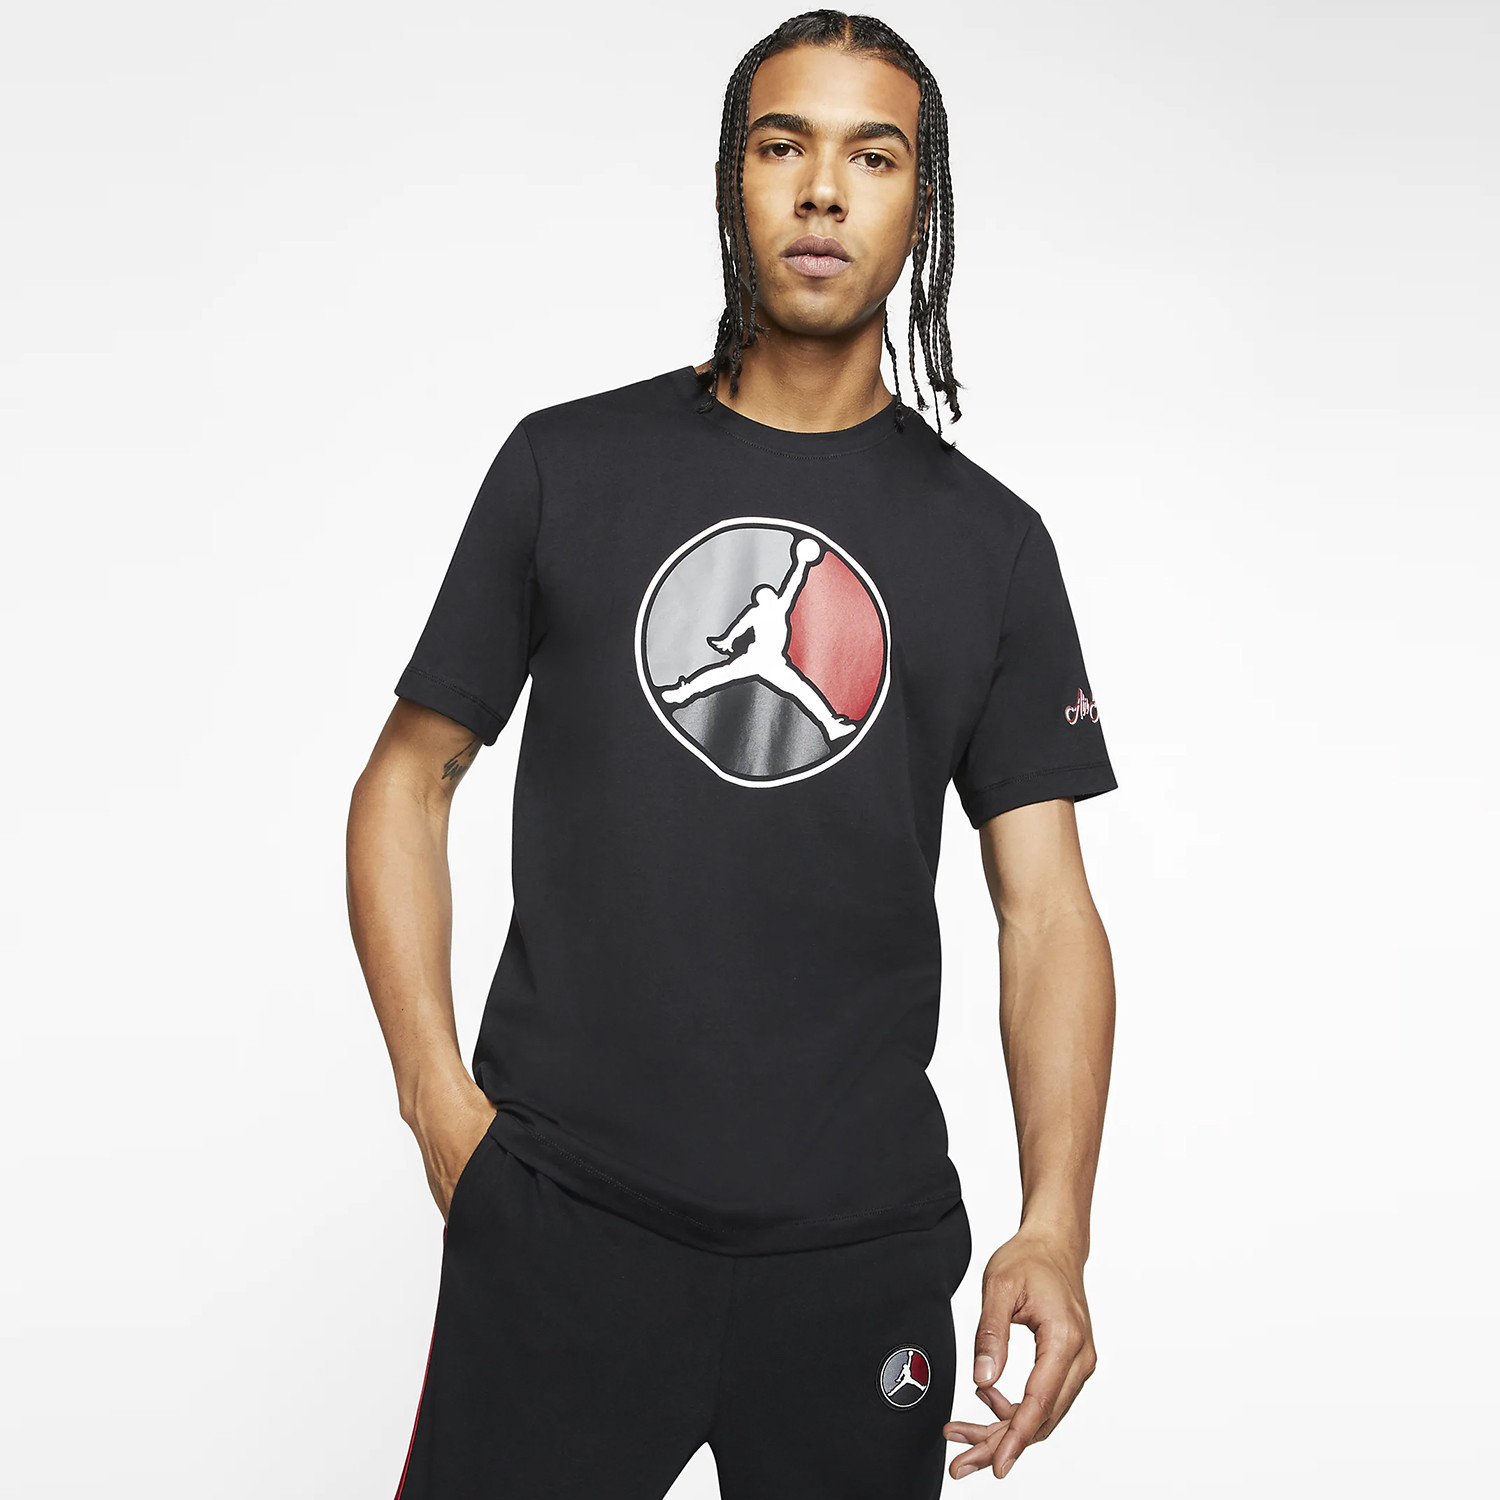 Nike Jordan Remastered Men'S T-Shirt (9000043871_6097)